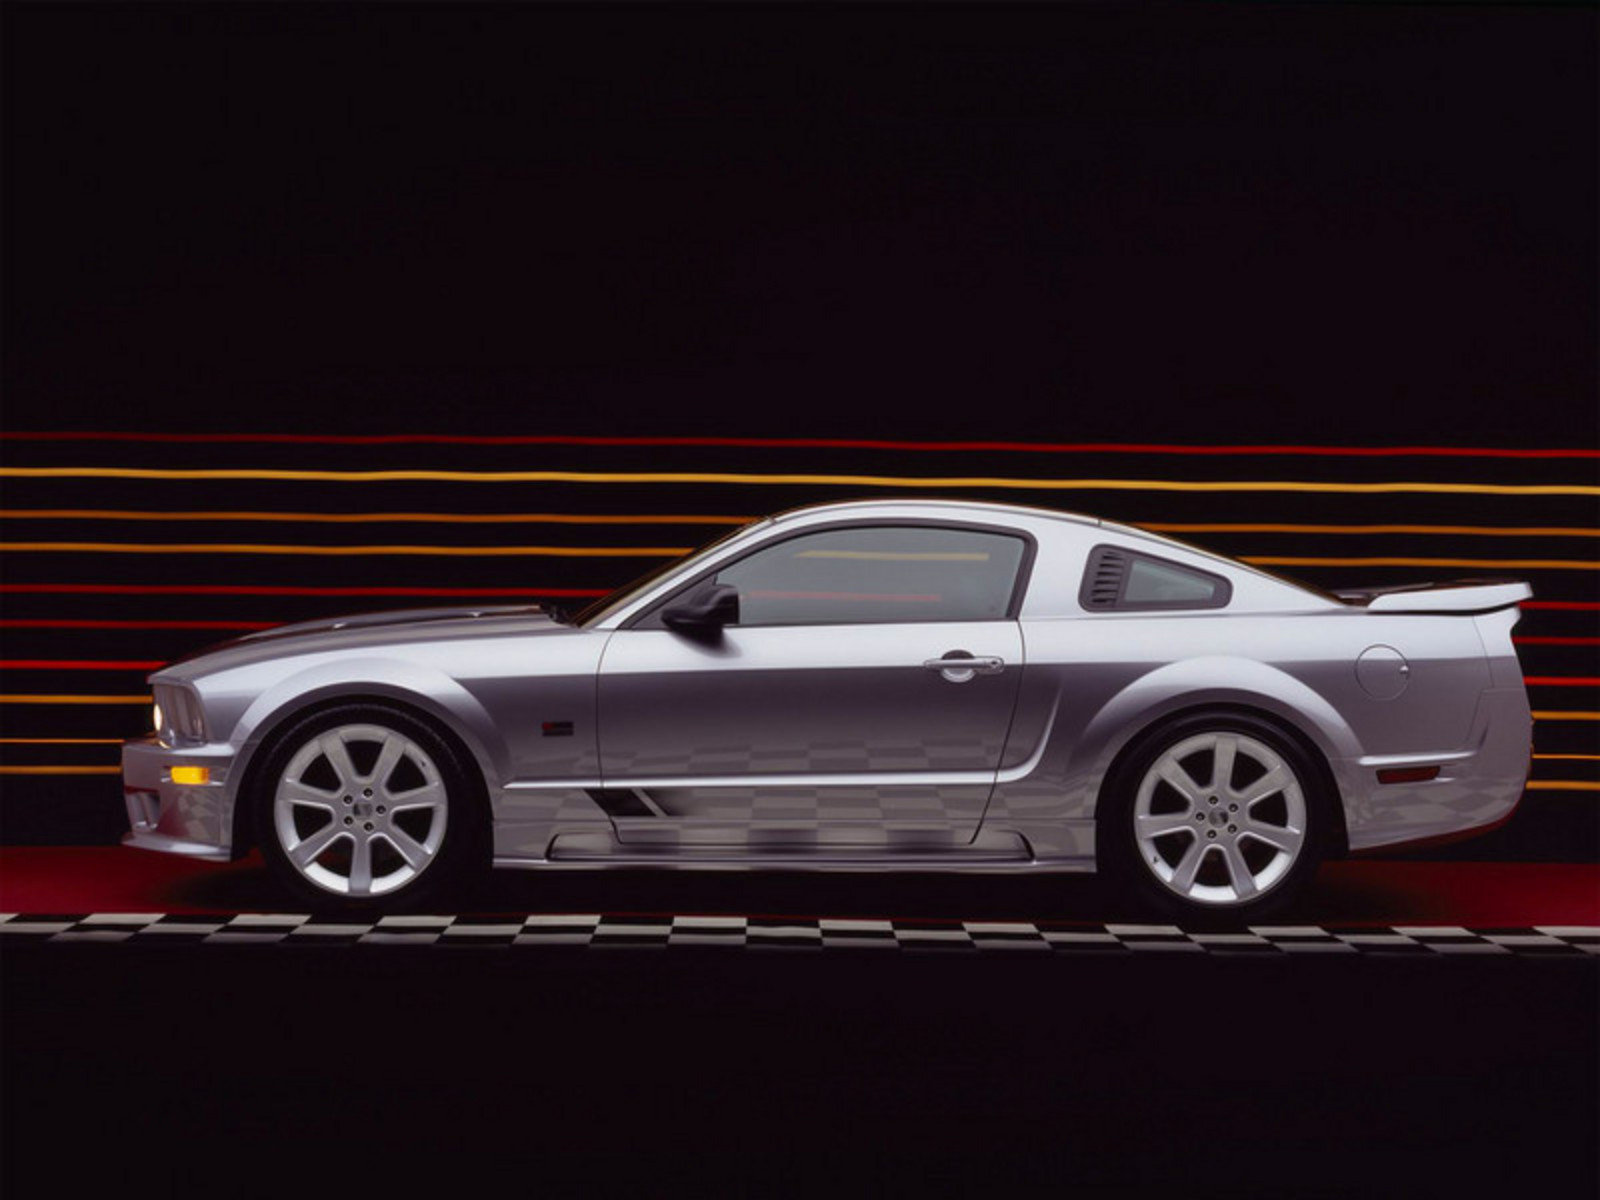 2005 saleen s281 mustang picture 49511 car review. Black Bedroom Furniture Sets. Home Design Ideas